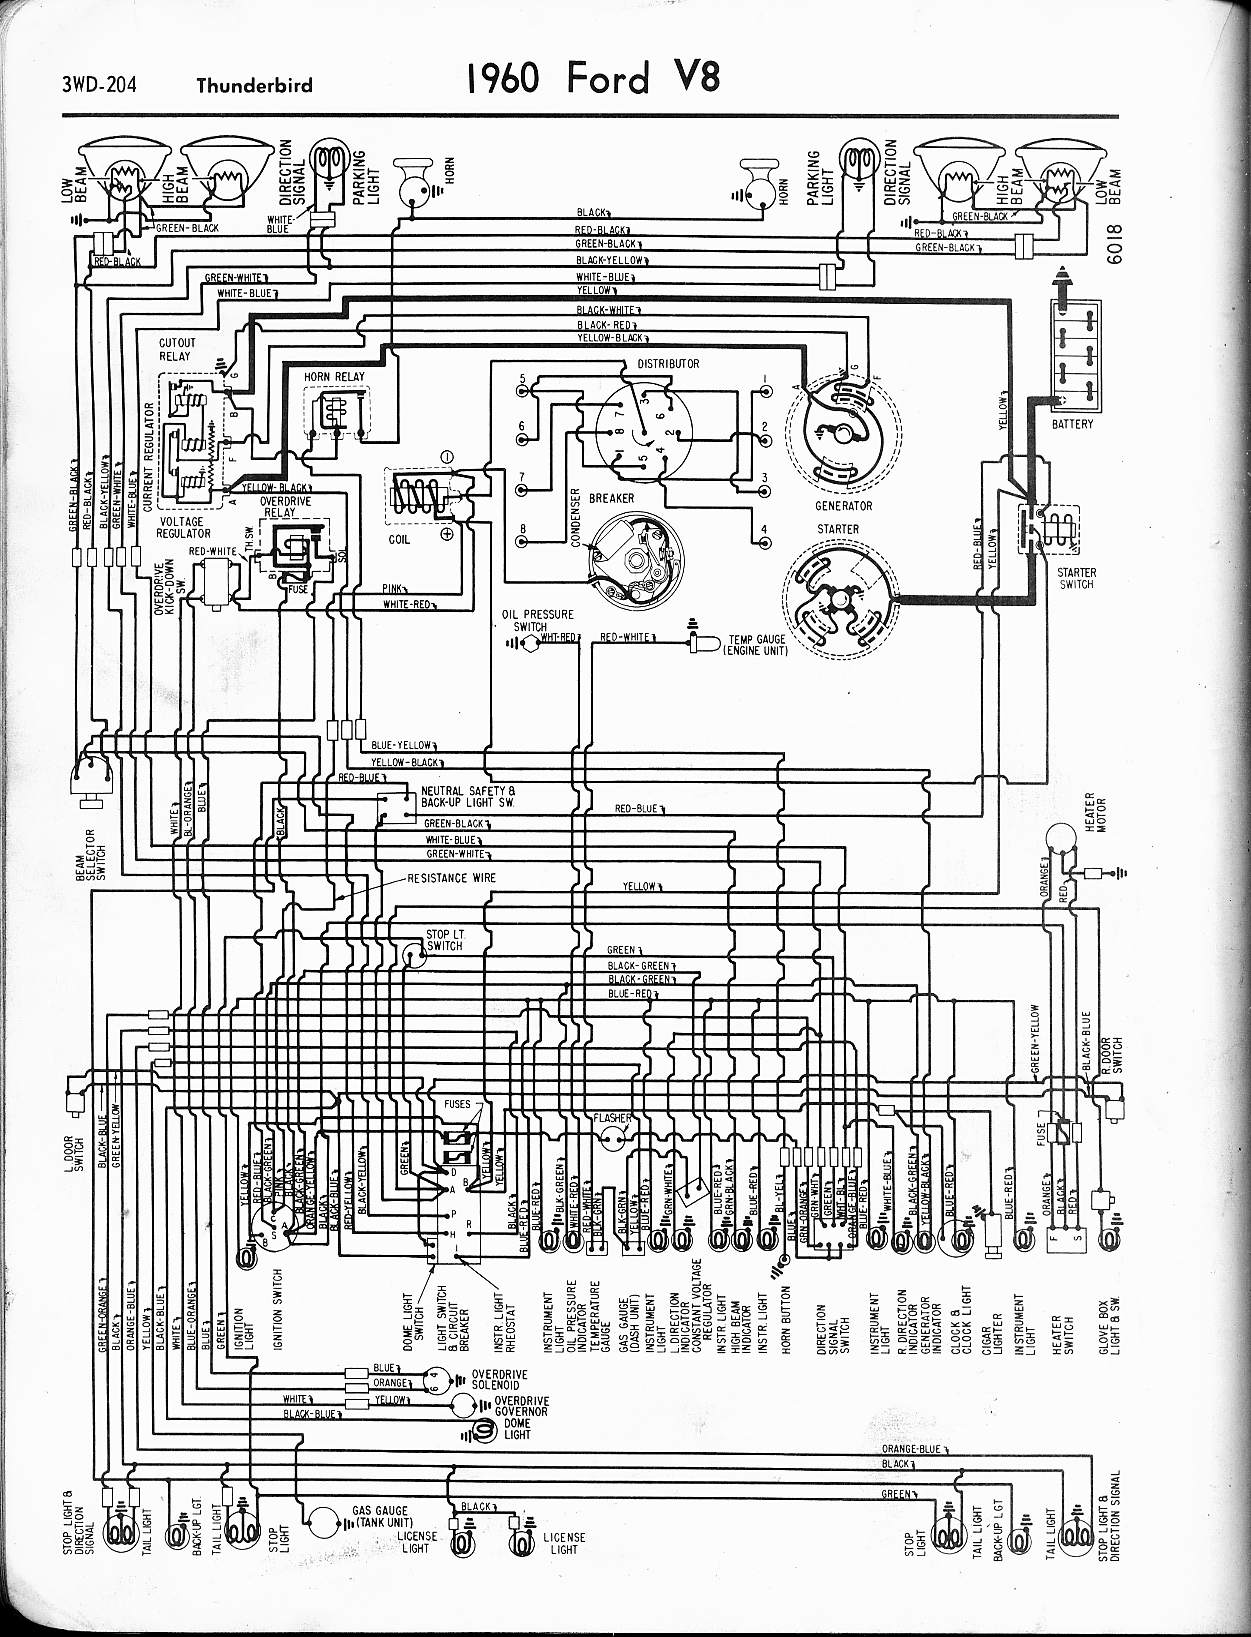 1964 ford ranchero wiring diagram with Fordindex on Wiring Diagram For 1963 Ford Falcon Ranchero further 1964 Ford Ranchero Windshield Wiper Wiring Diagram likewise Id25 further 2009 08 01 archive as well 1963 Pontiac 4 Cylinder Engine.